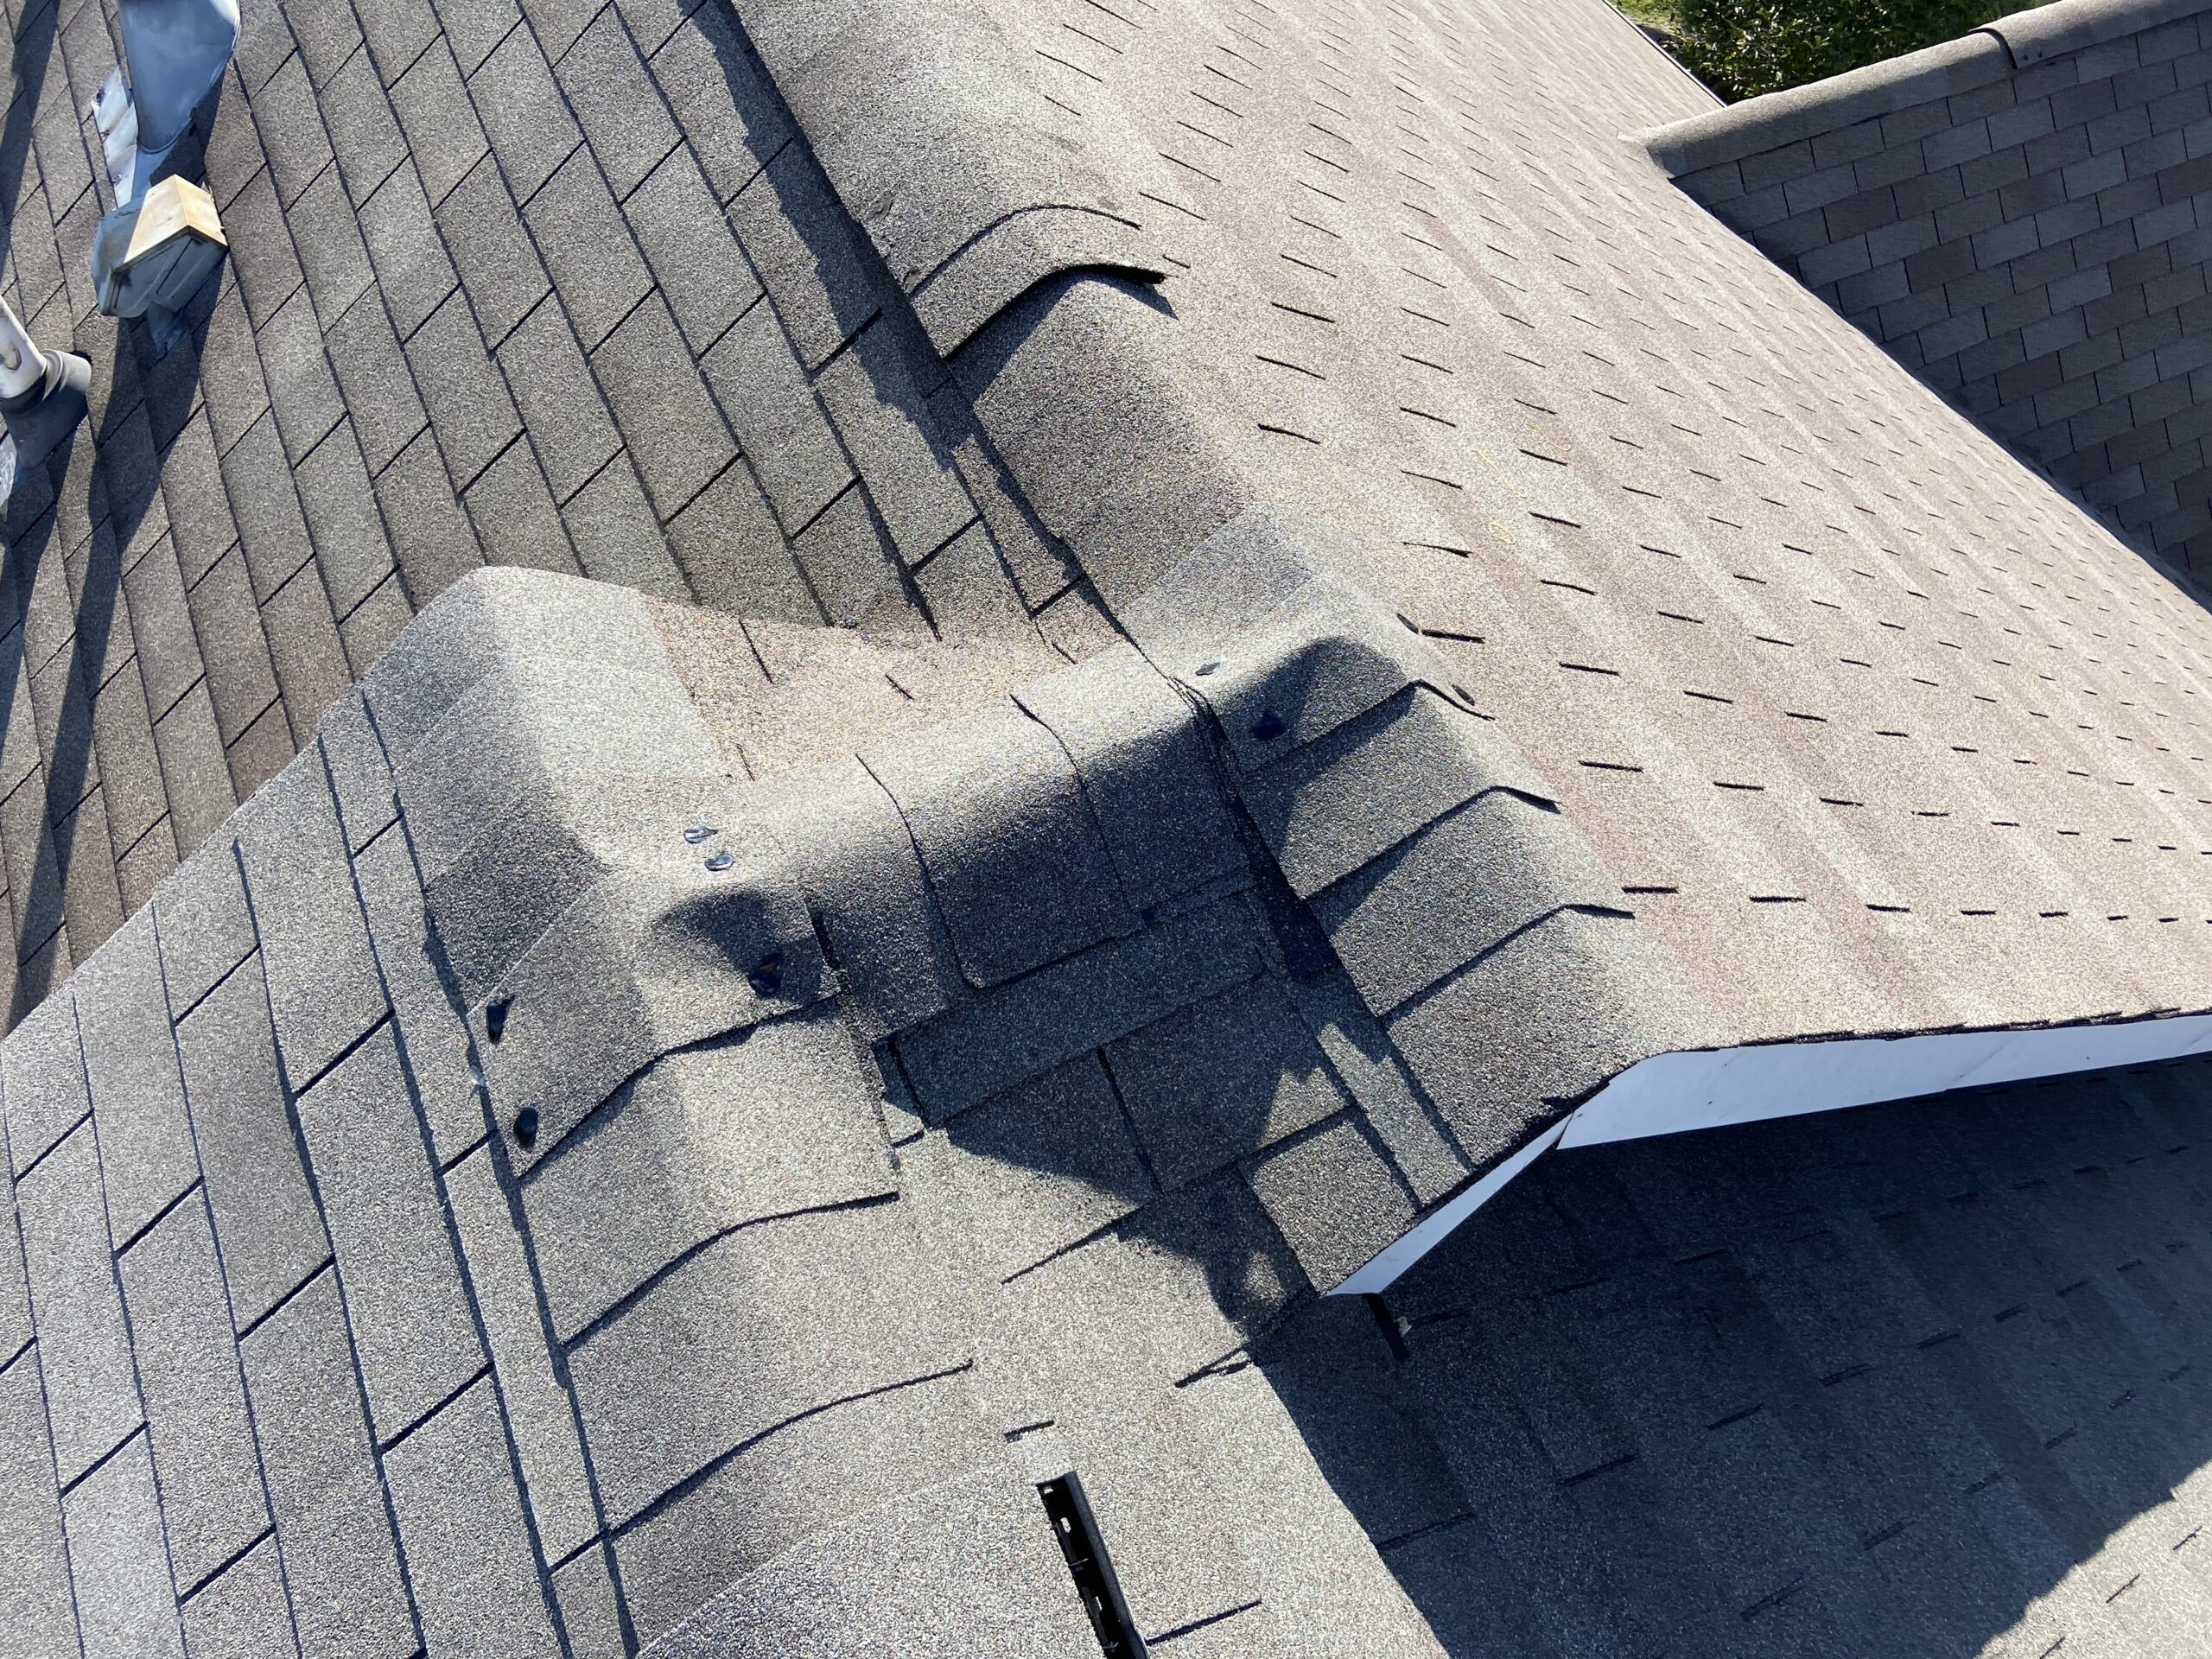 There's a picture of a condo roof tying into the Neighbor in Roof